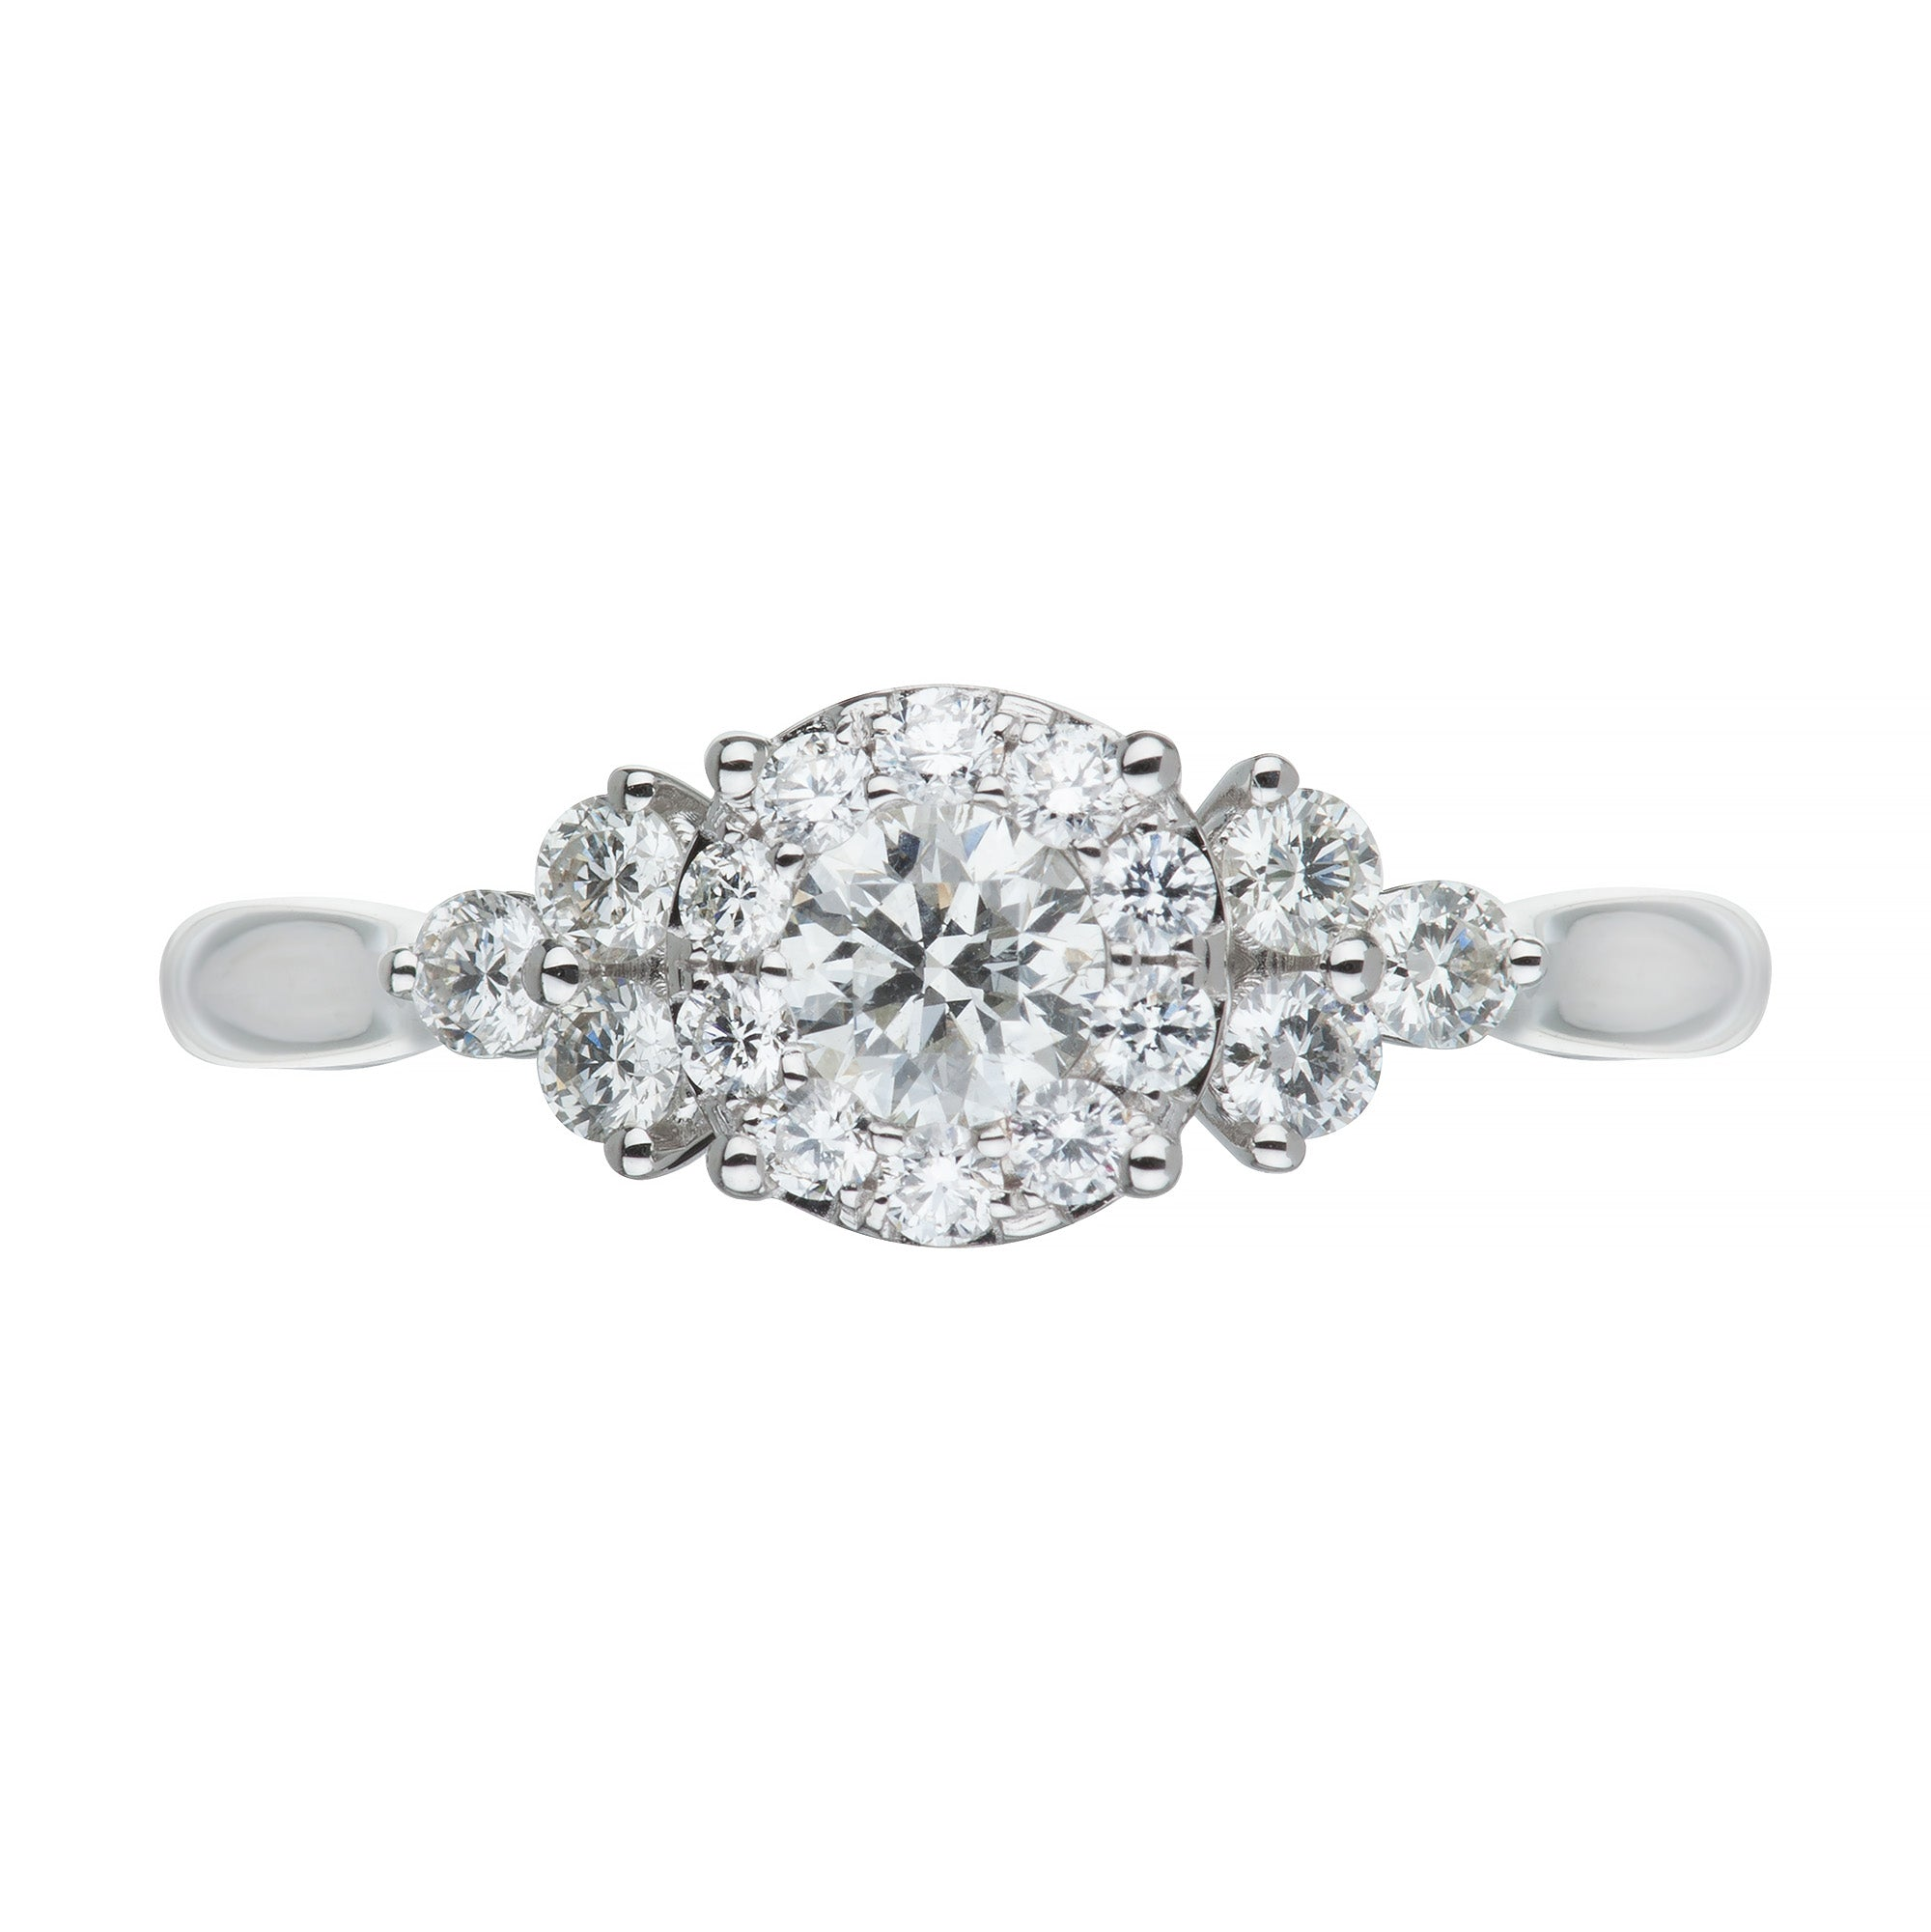 White Gold & Diamond Fancy Cluster Ring